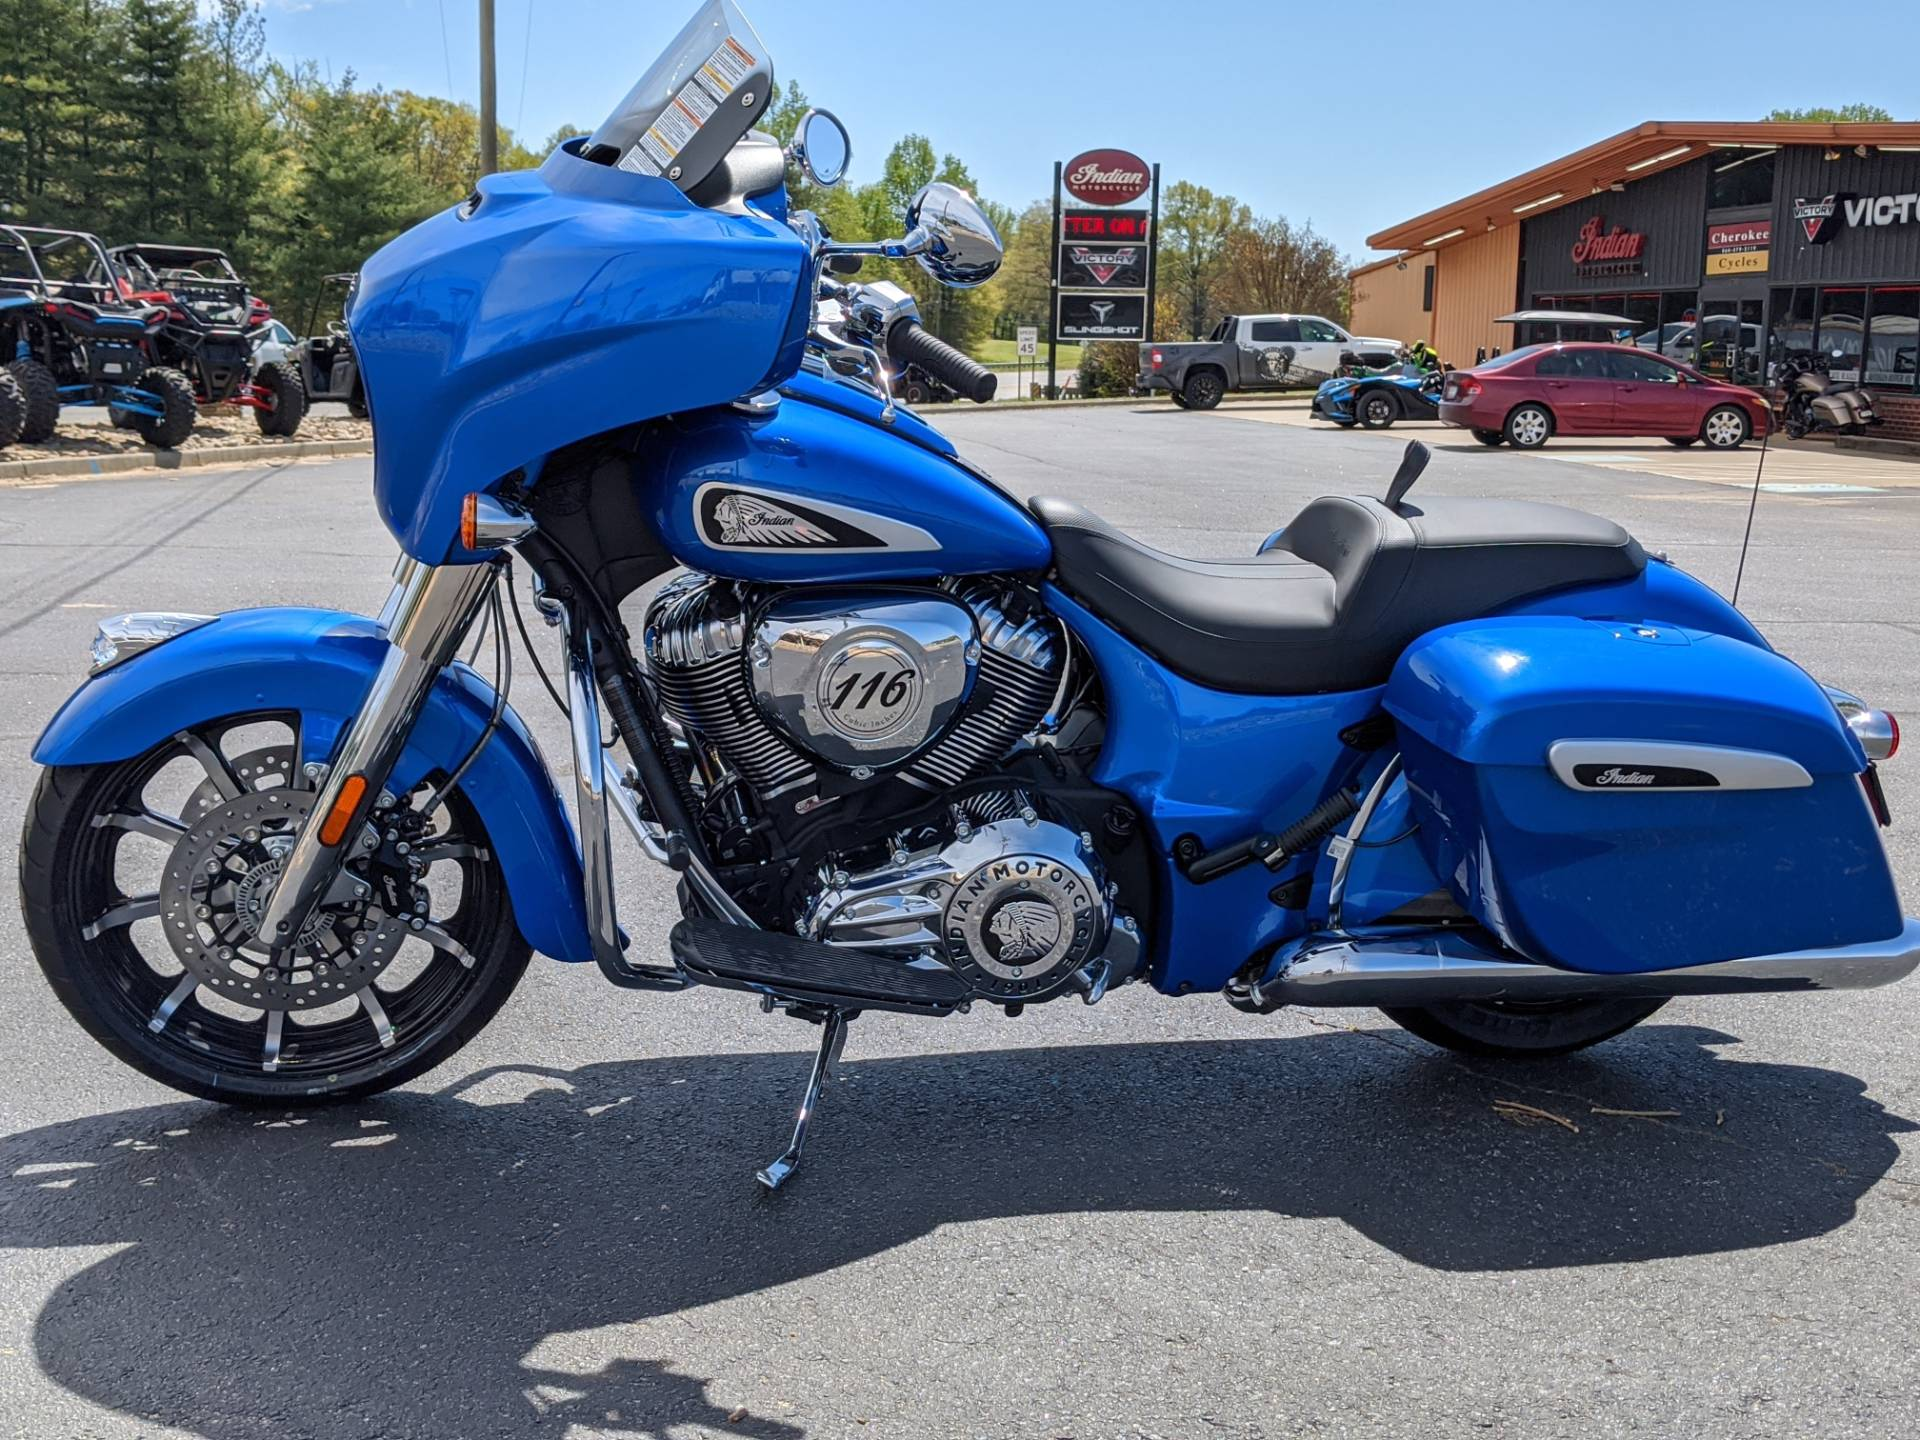 2020 Indian Chieftain Limited - Photo 5